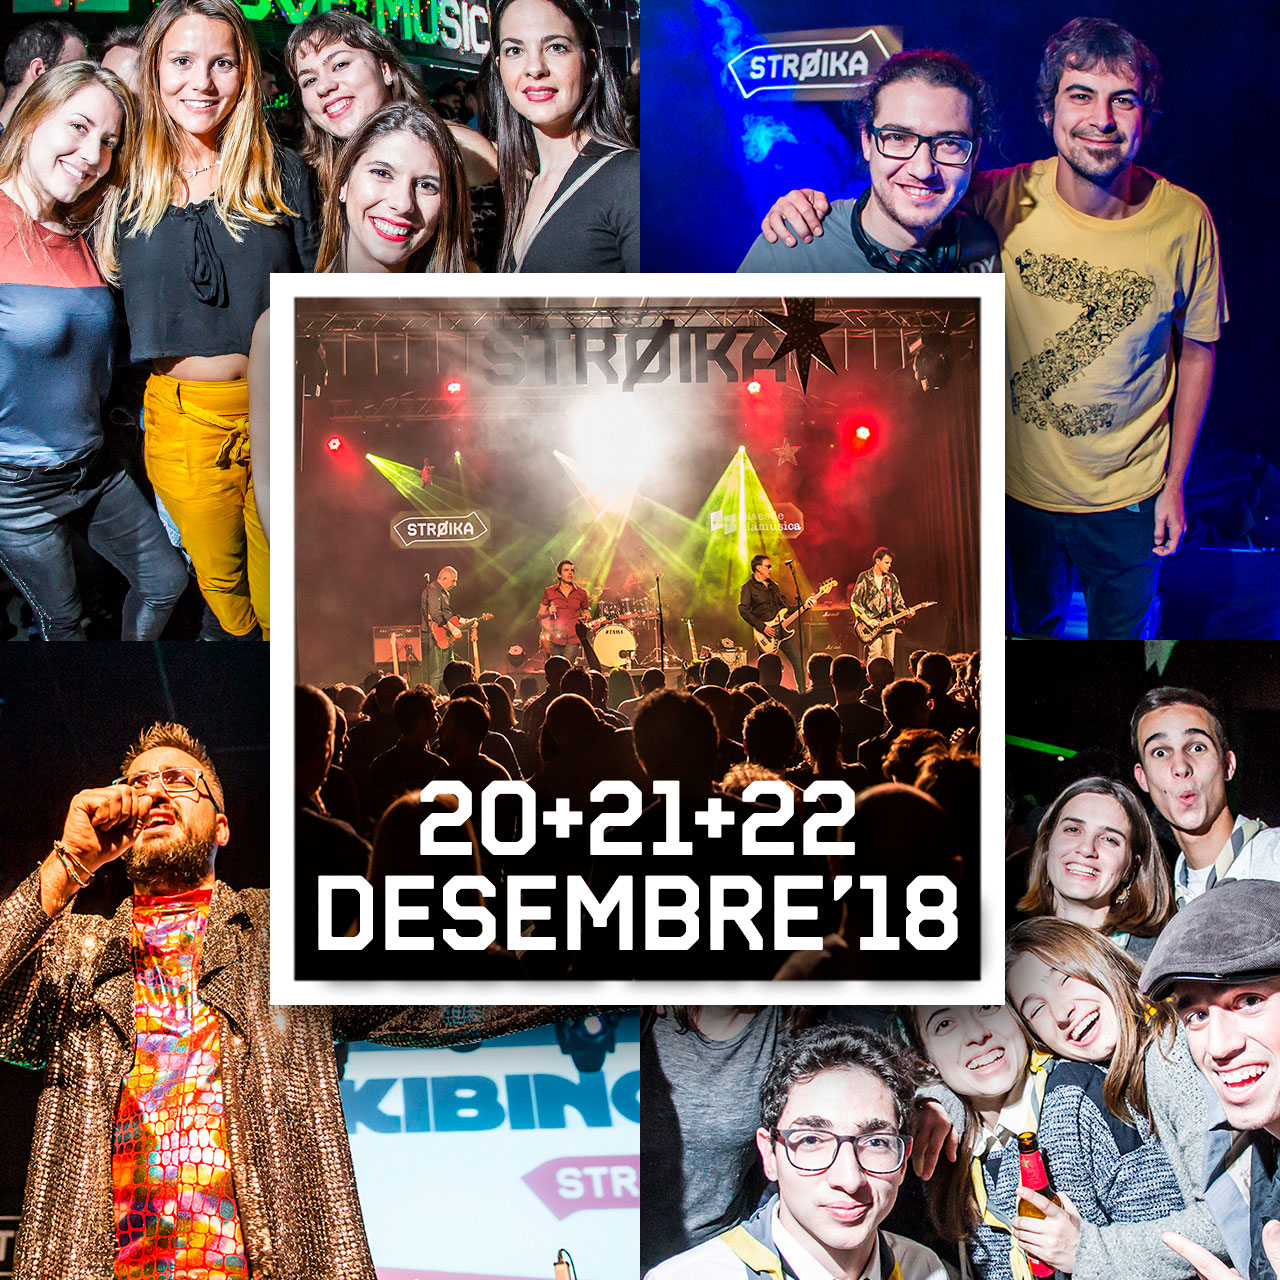 DJ20 +DV21 +DS22 DES'18 // FRIKIBINGO +MCGREGOR'S +SESSIONS